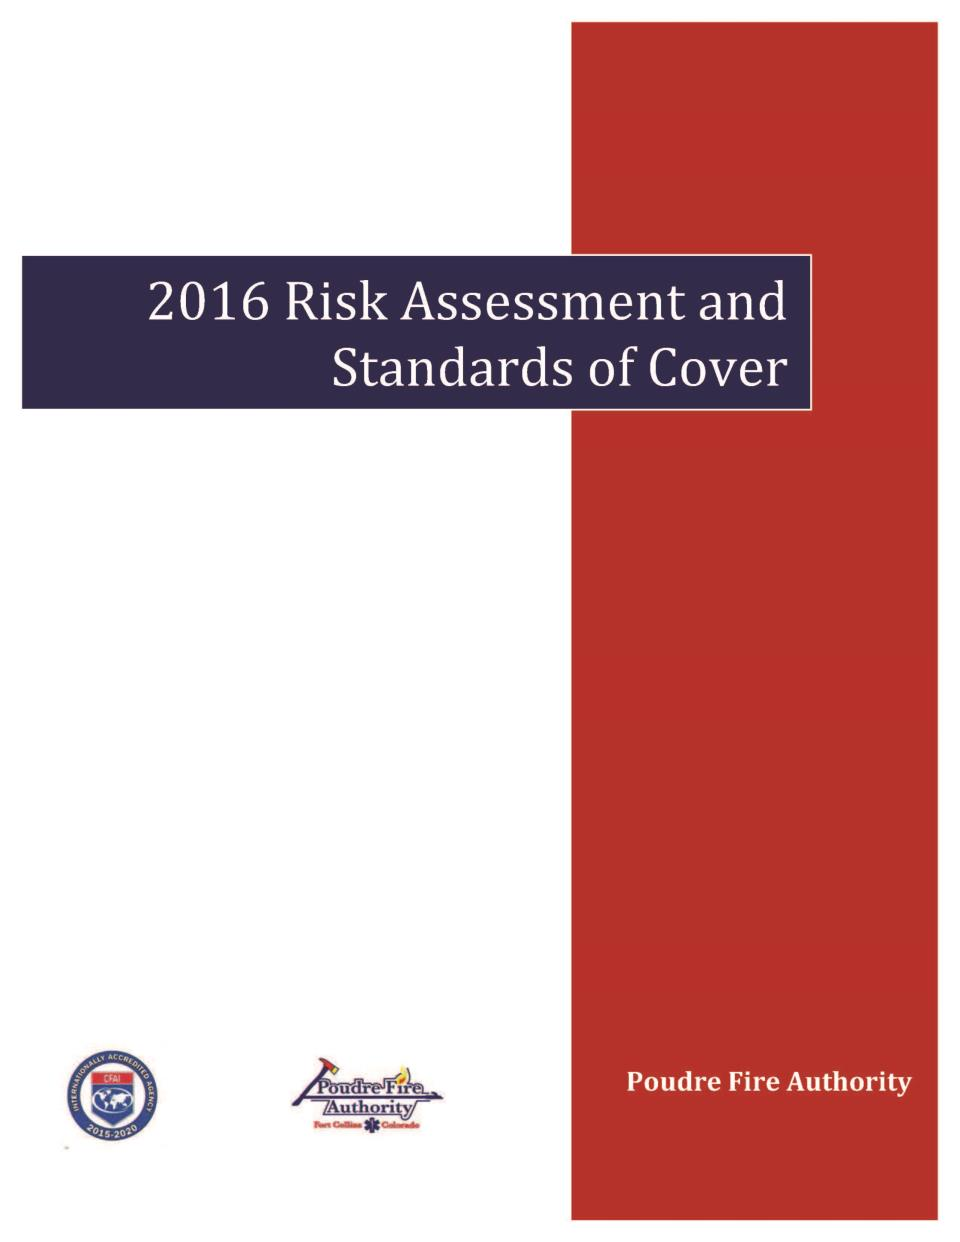 Poudre Fire Authority 2016 Risk Assessment and Standards of Cover Cover Page